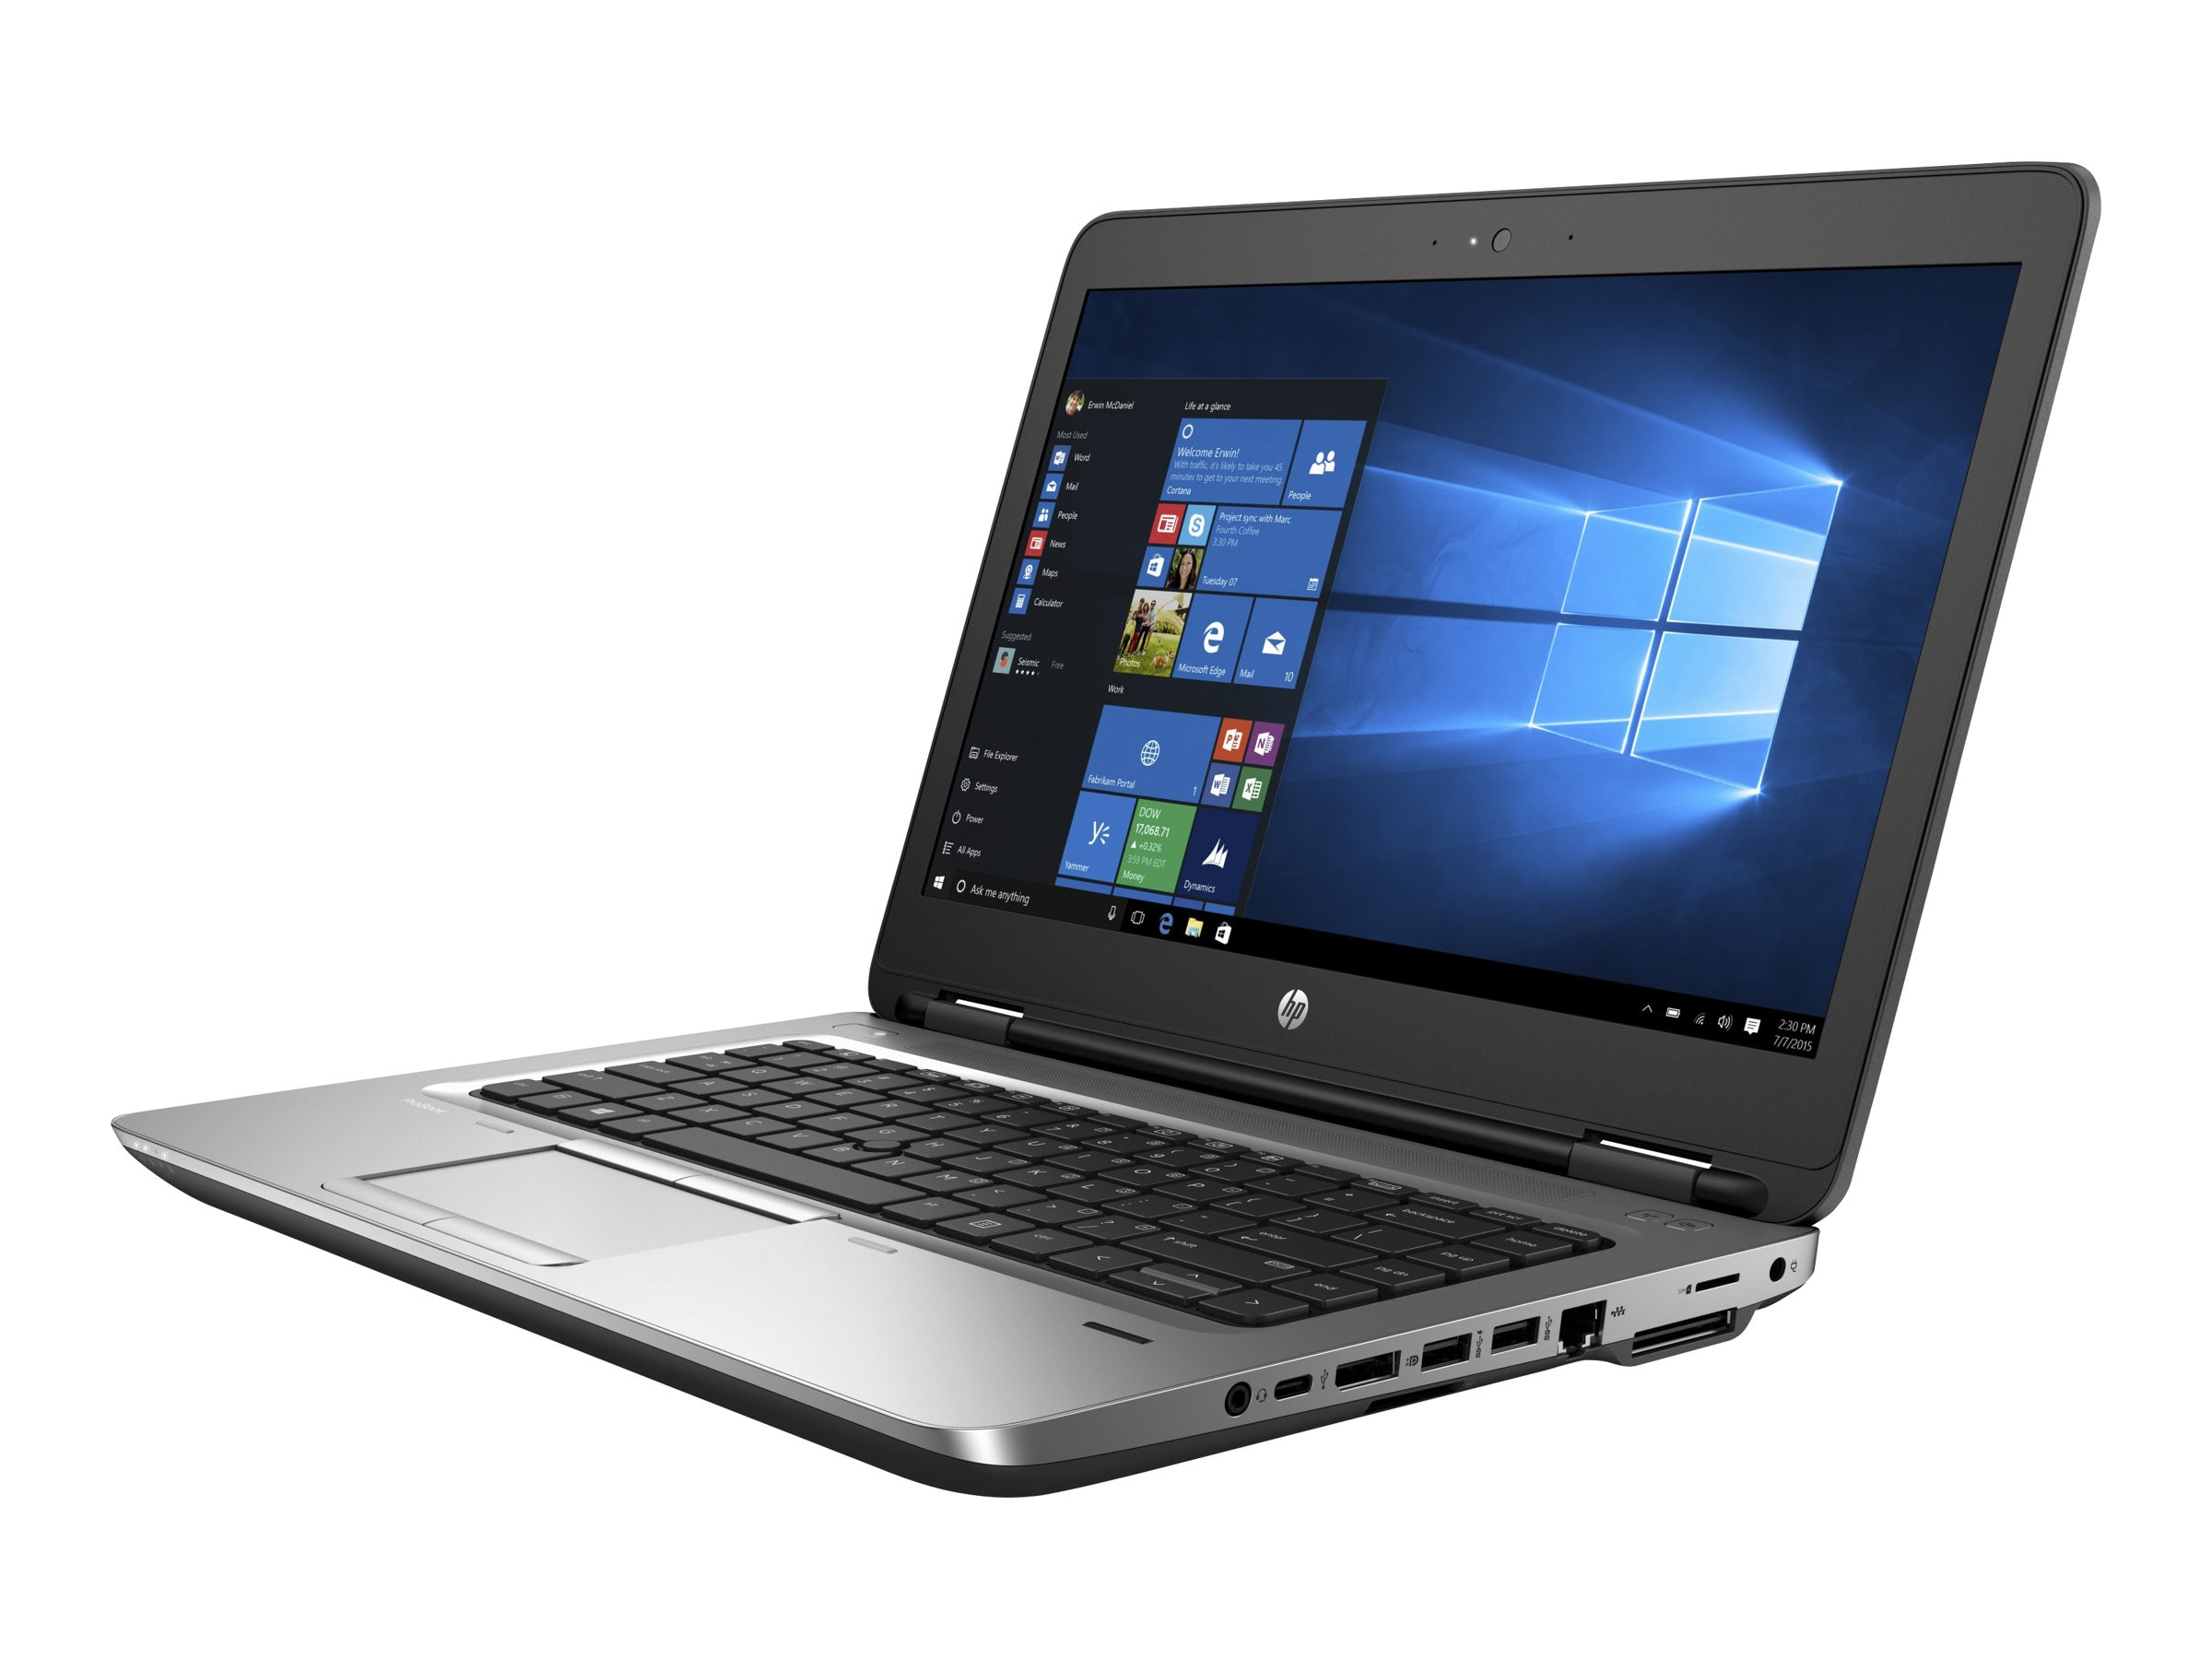 HP ProBook 640 G2 2.4GHz Core i5 14in display